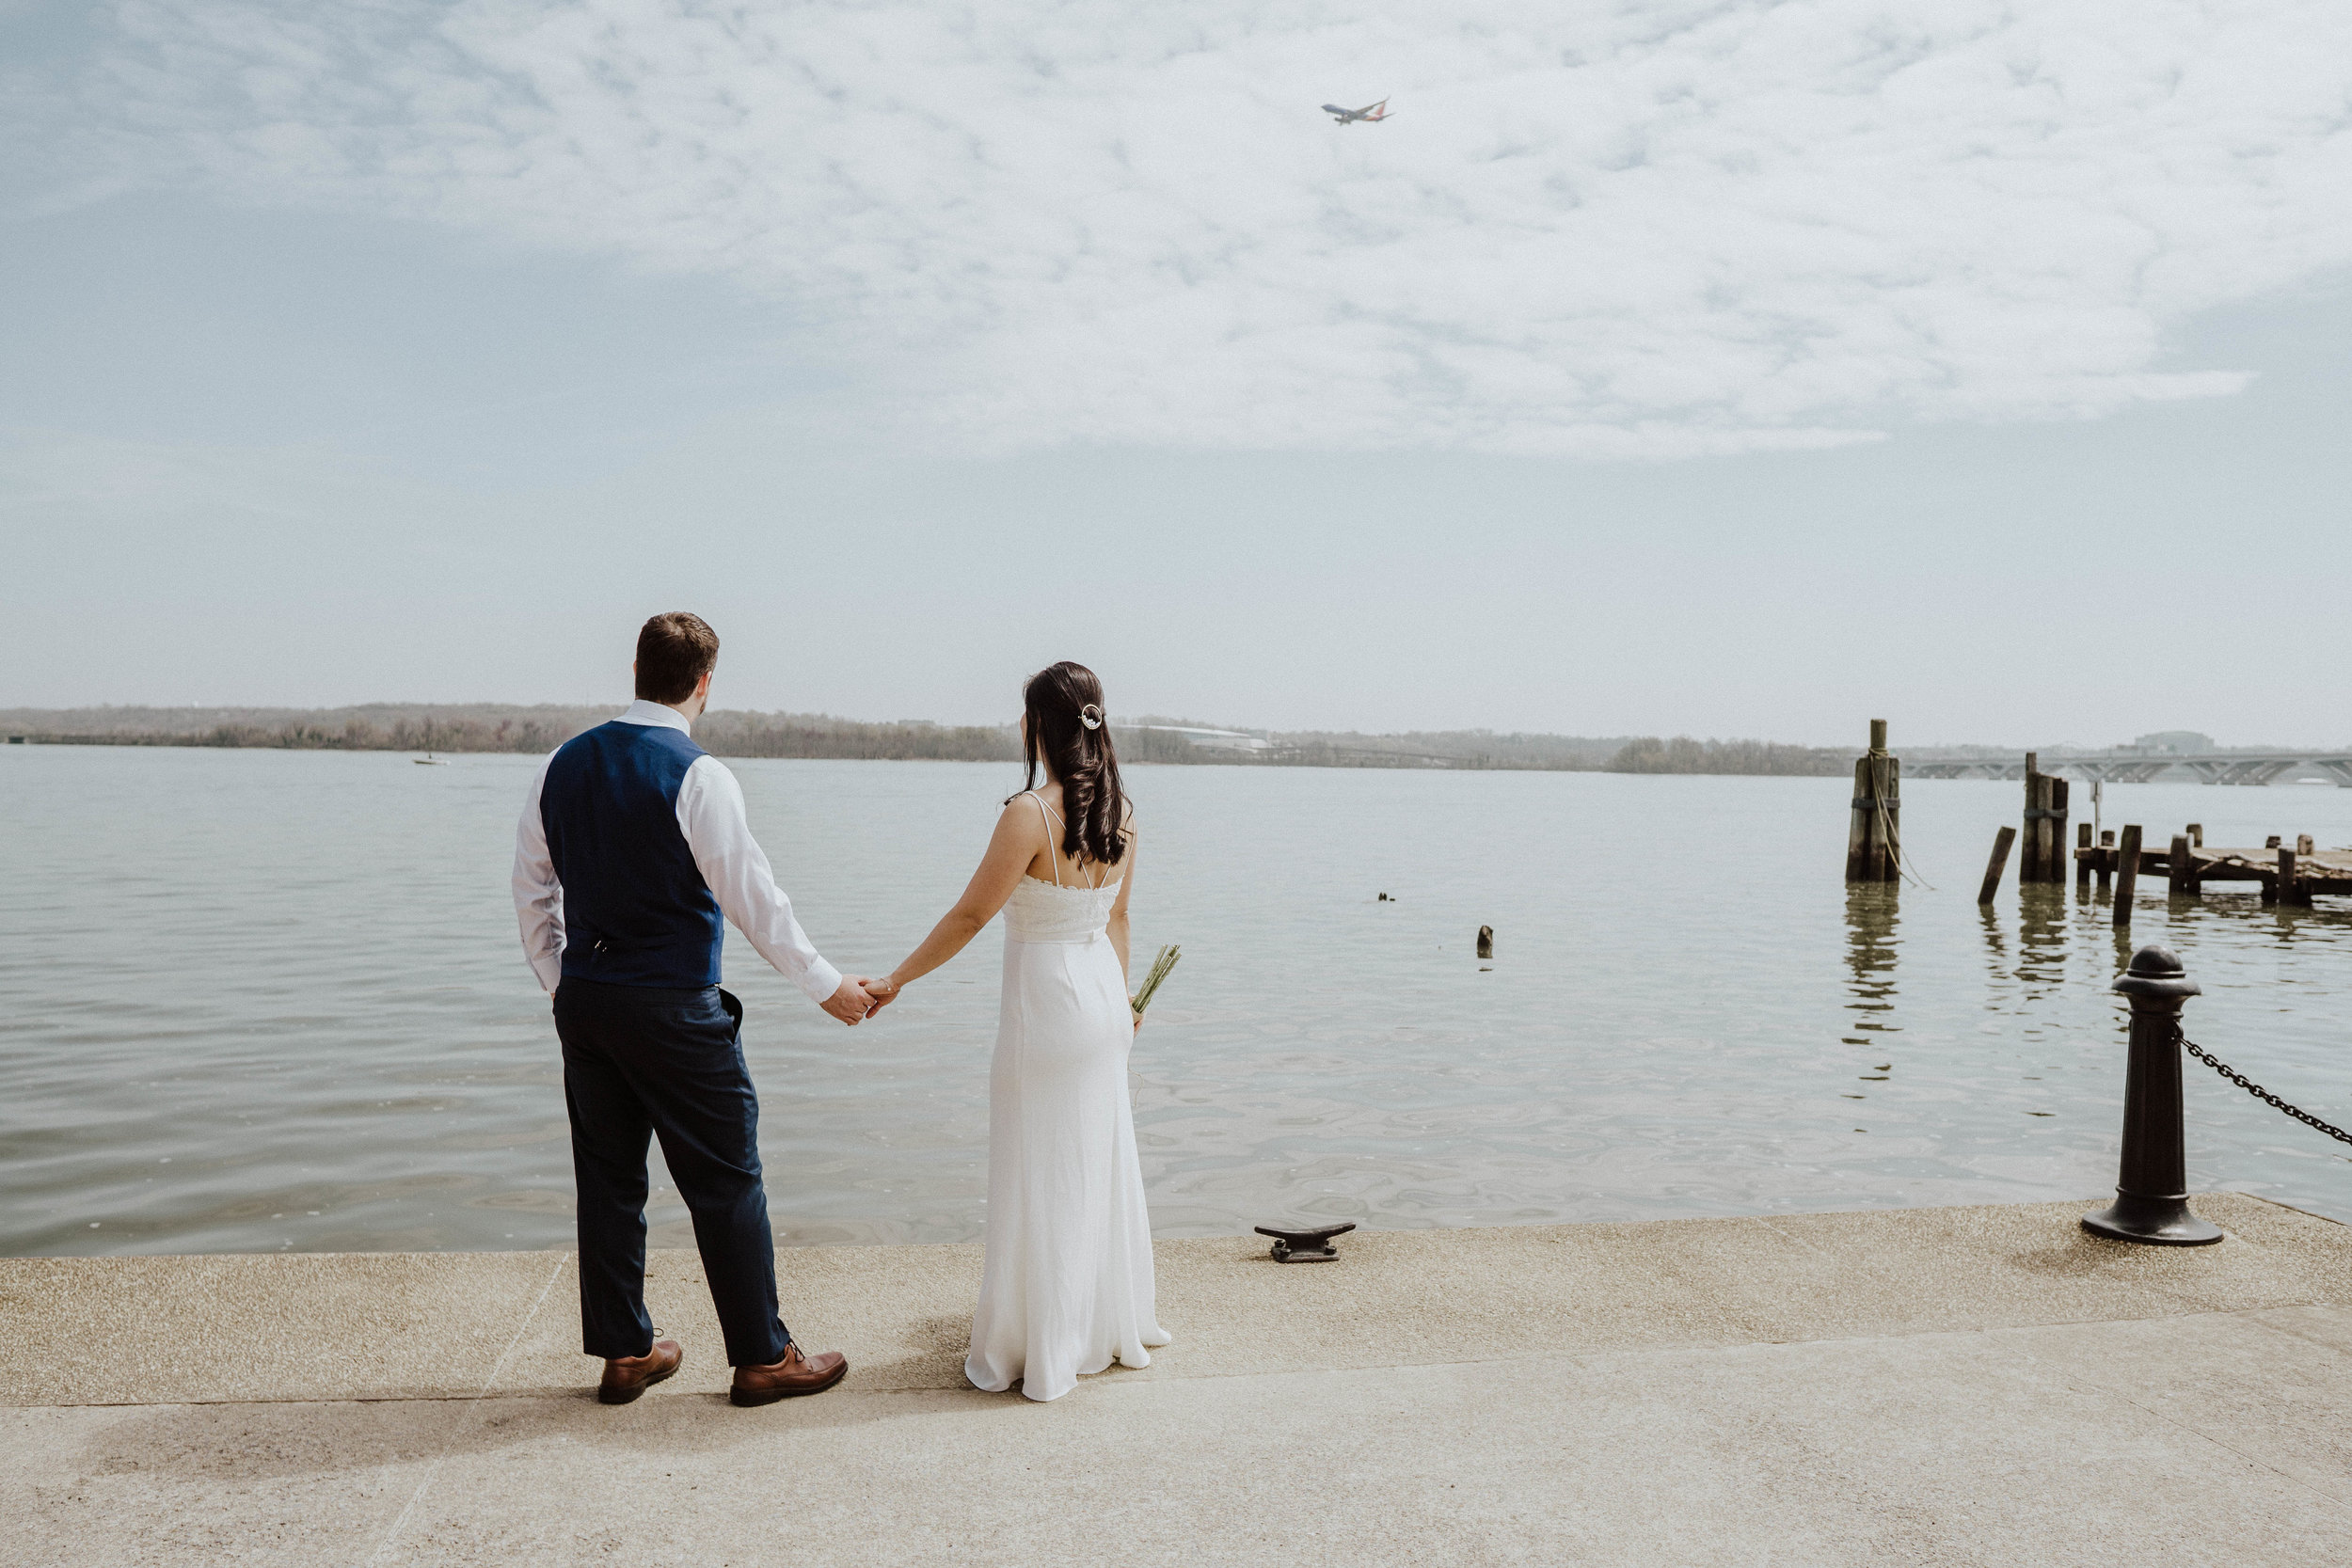 Airplane flying over Married Couple on Potomac River